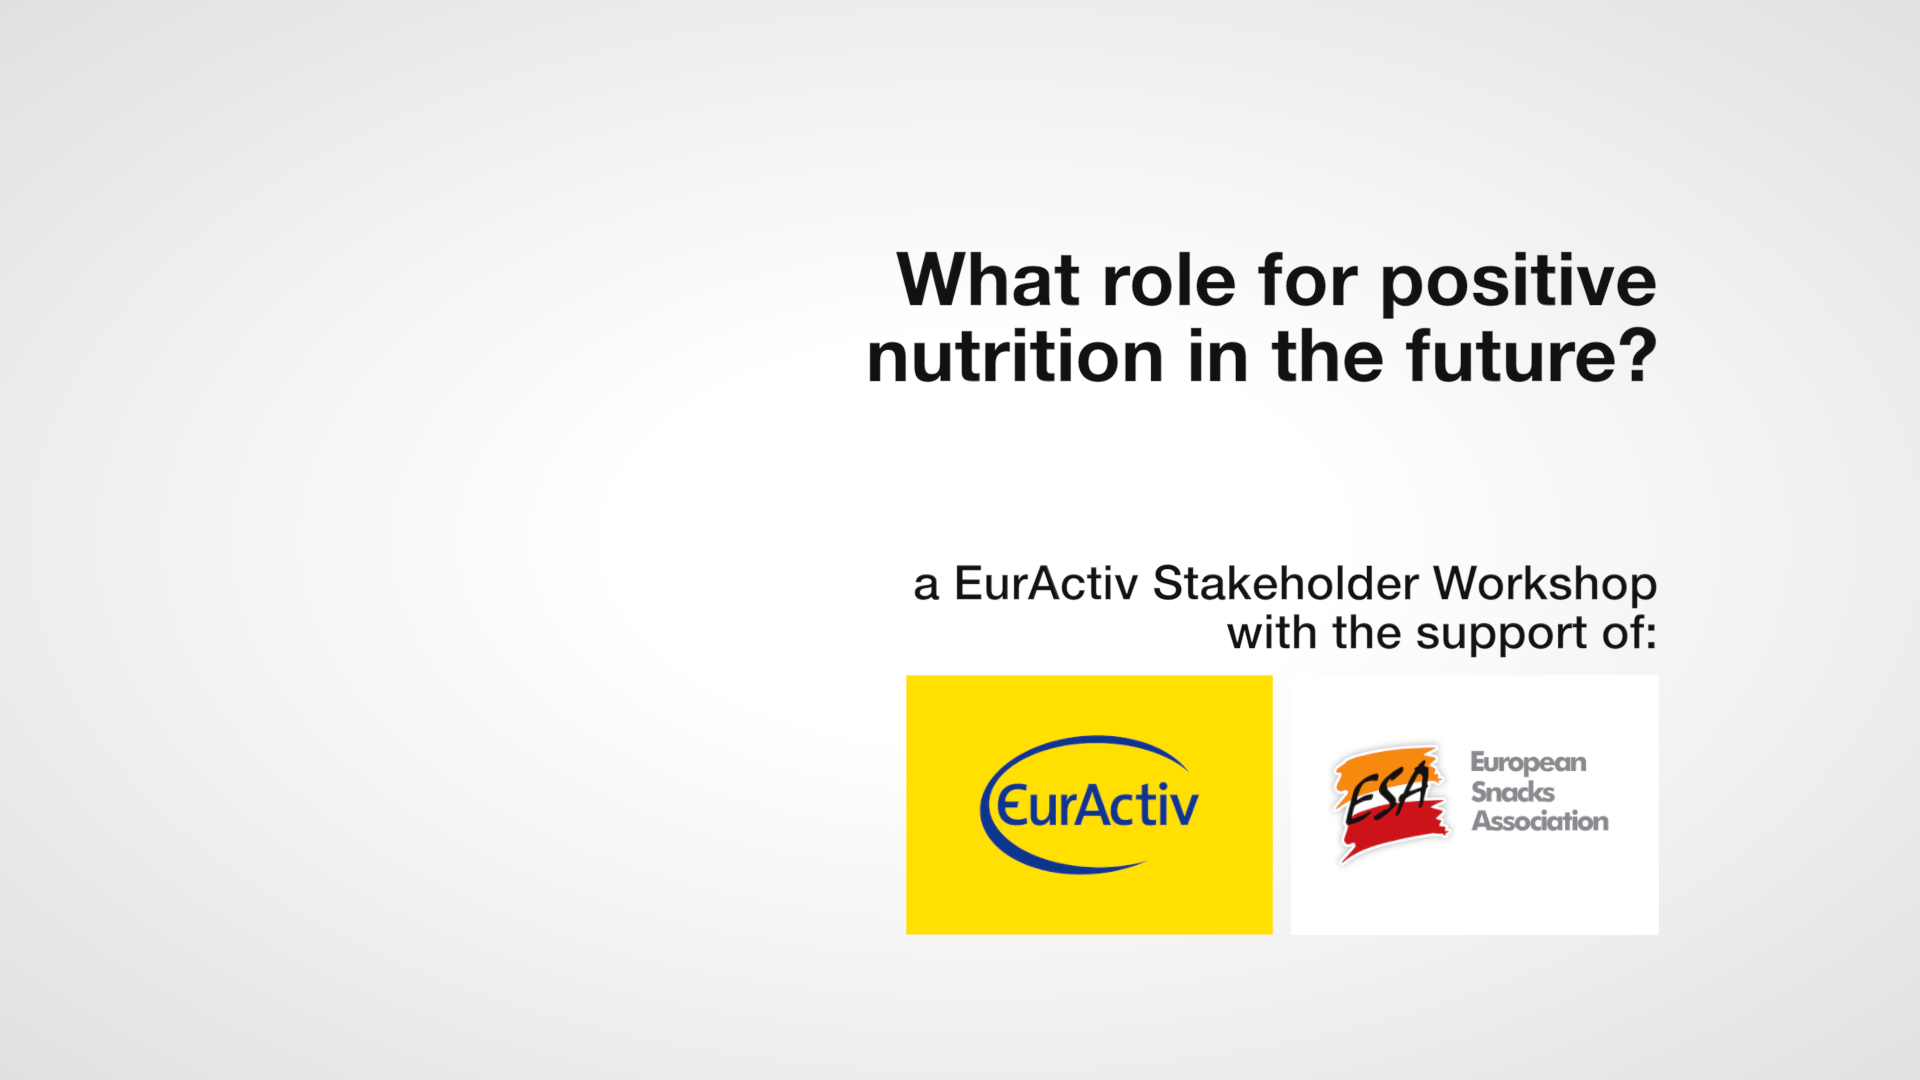 What role for positive nutrition in the future?